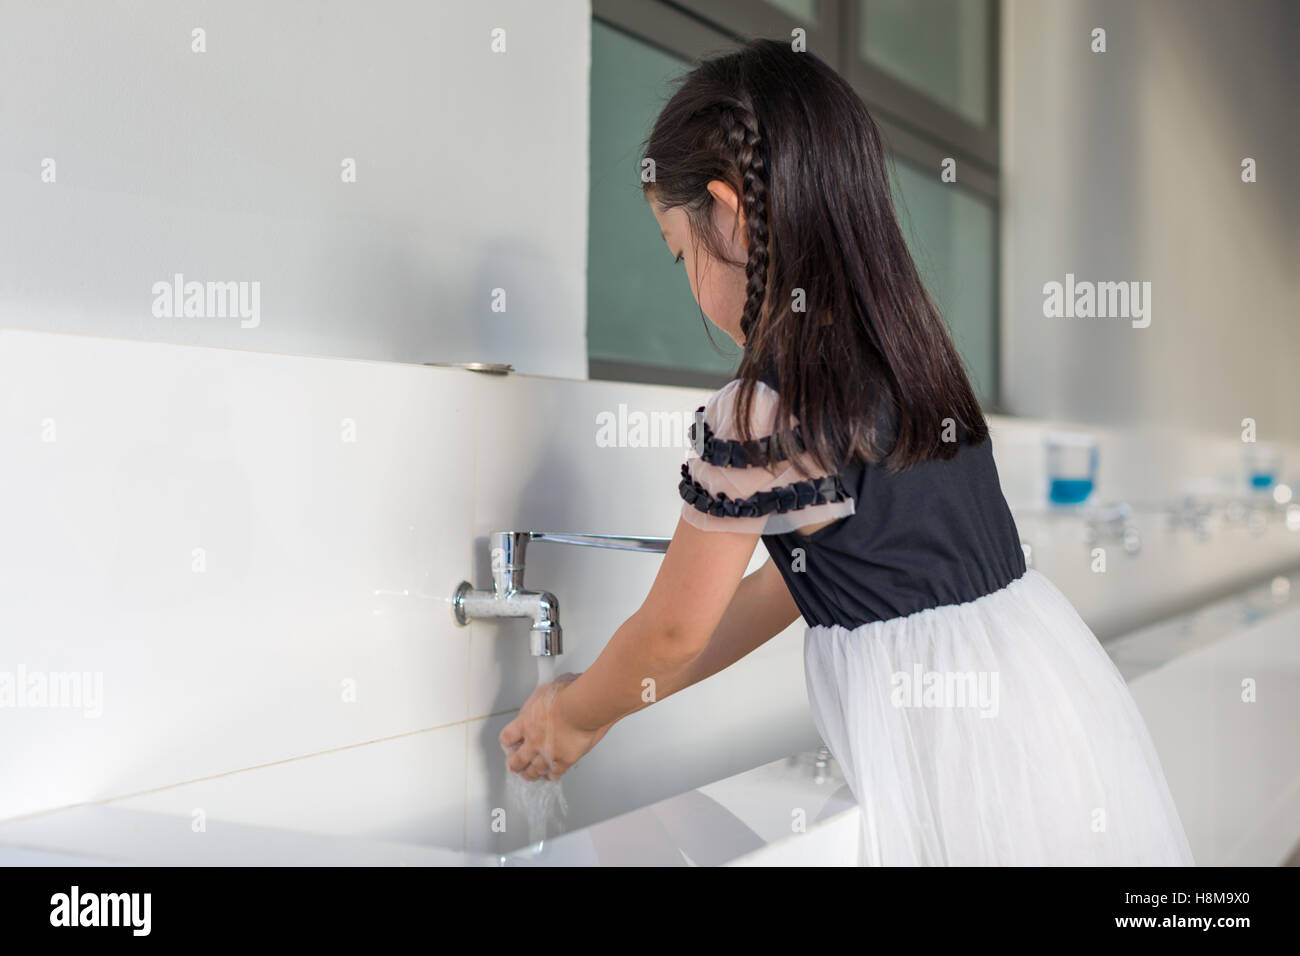 Child washing hands from water tap at school. - Stock Image